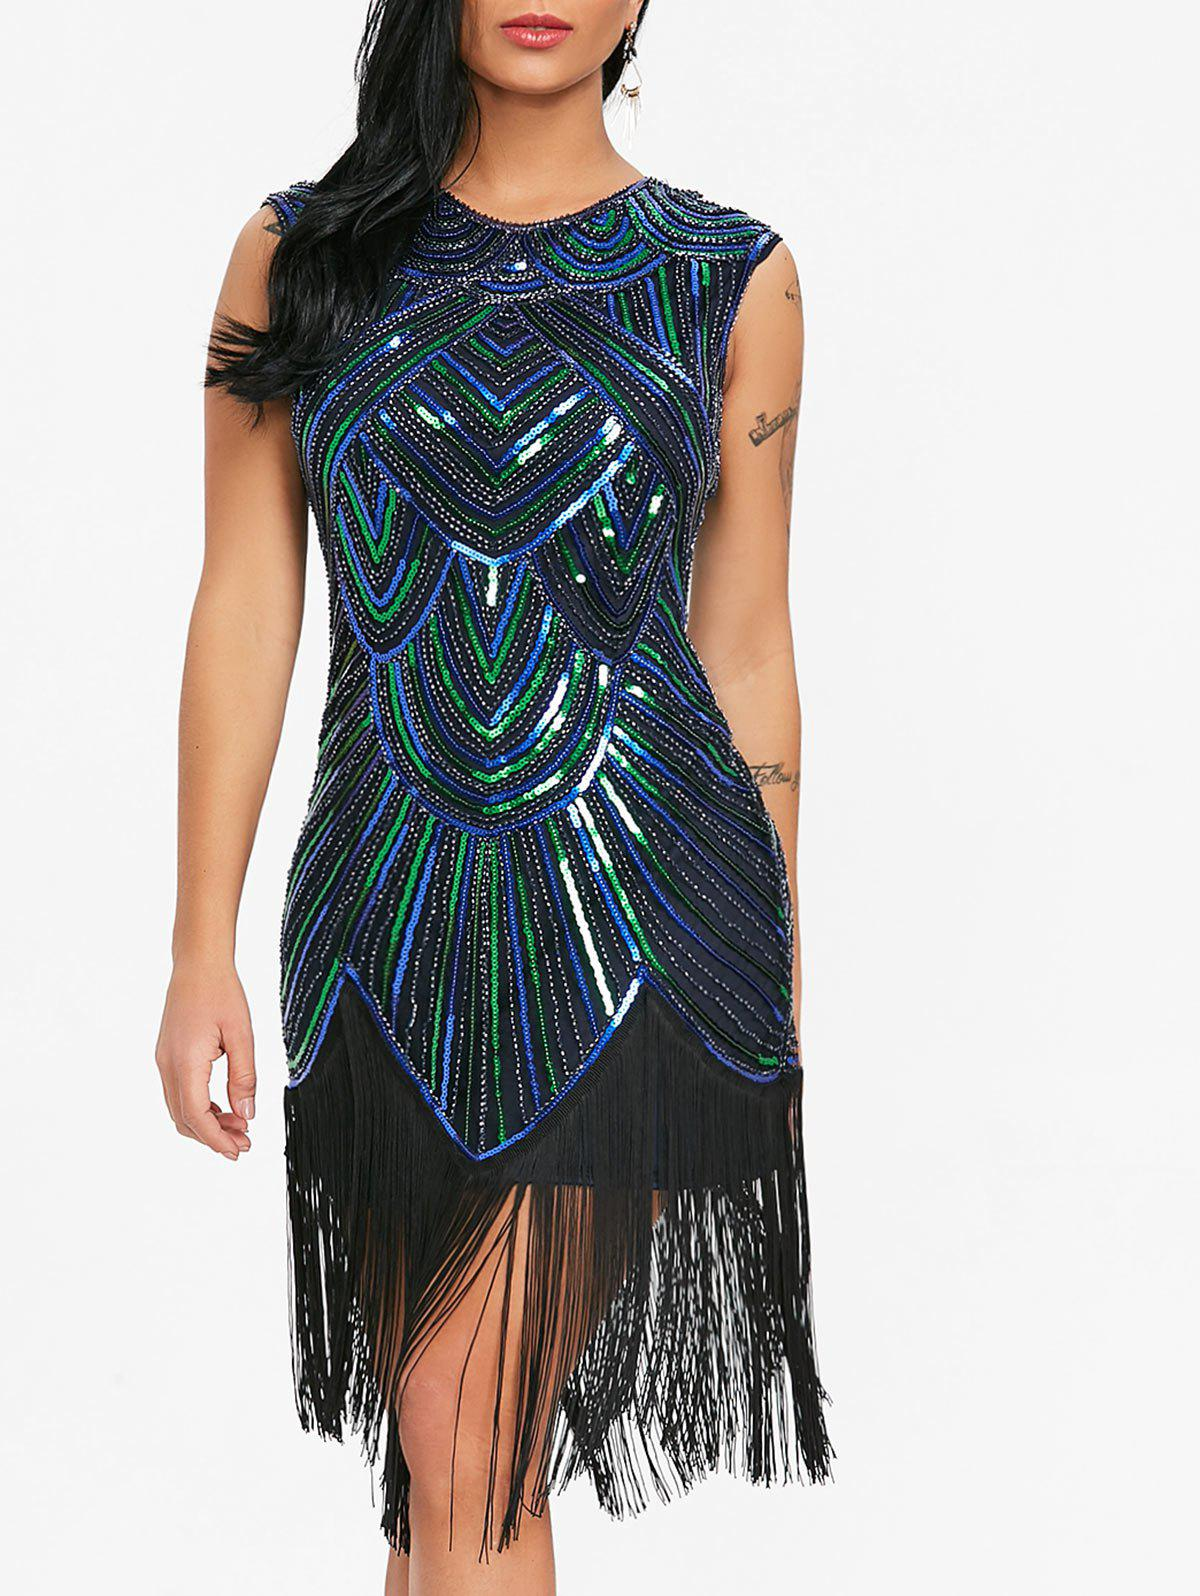 Sequined Fringe Midi Bodycon Dress - BLUE/GREEN M